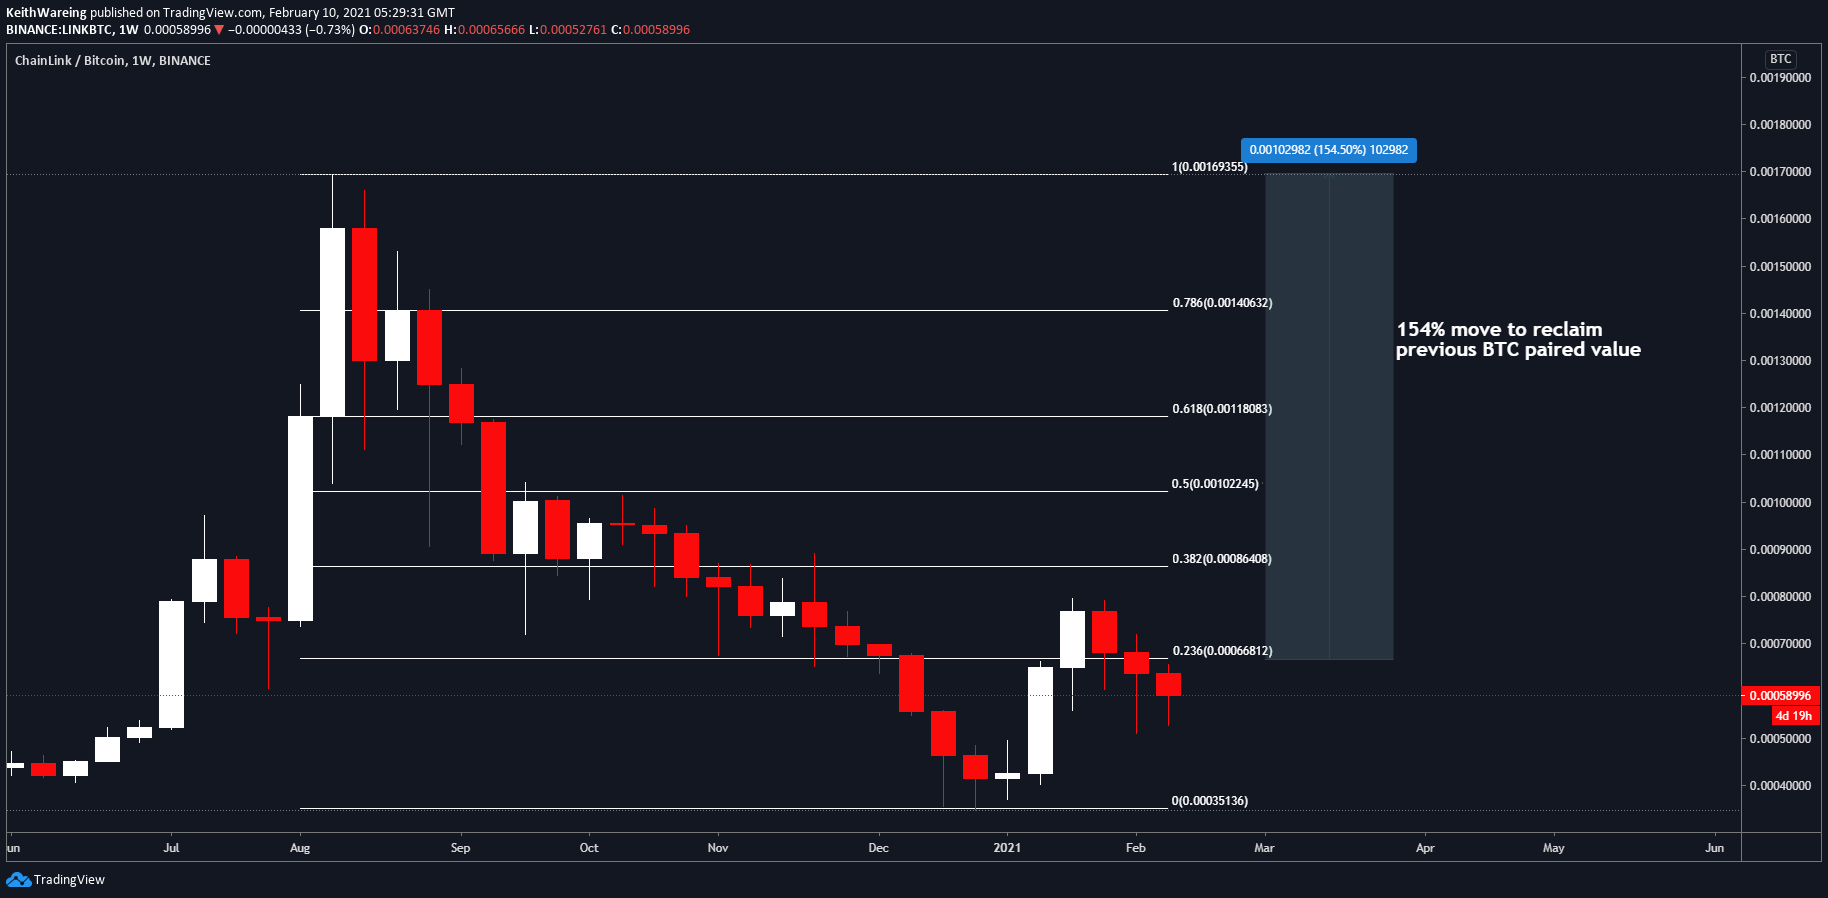 Chainlink hits new highs, but is LINK about to pull another 150% parabolic move?